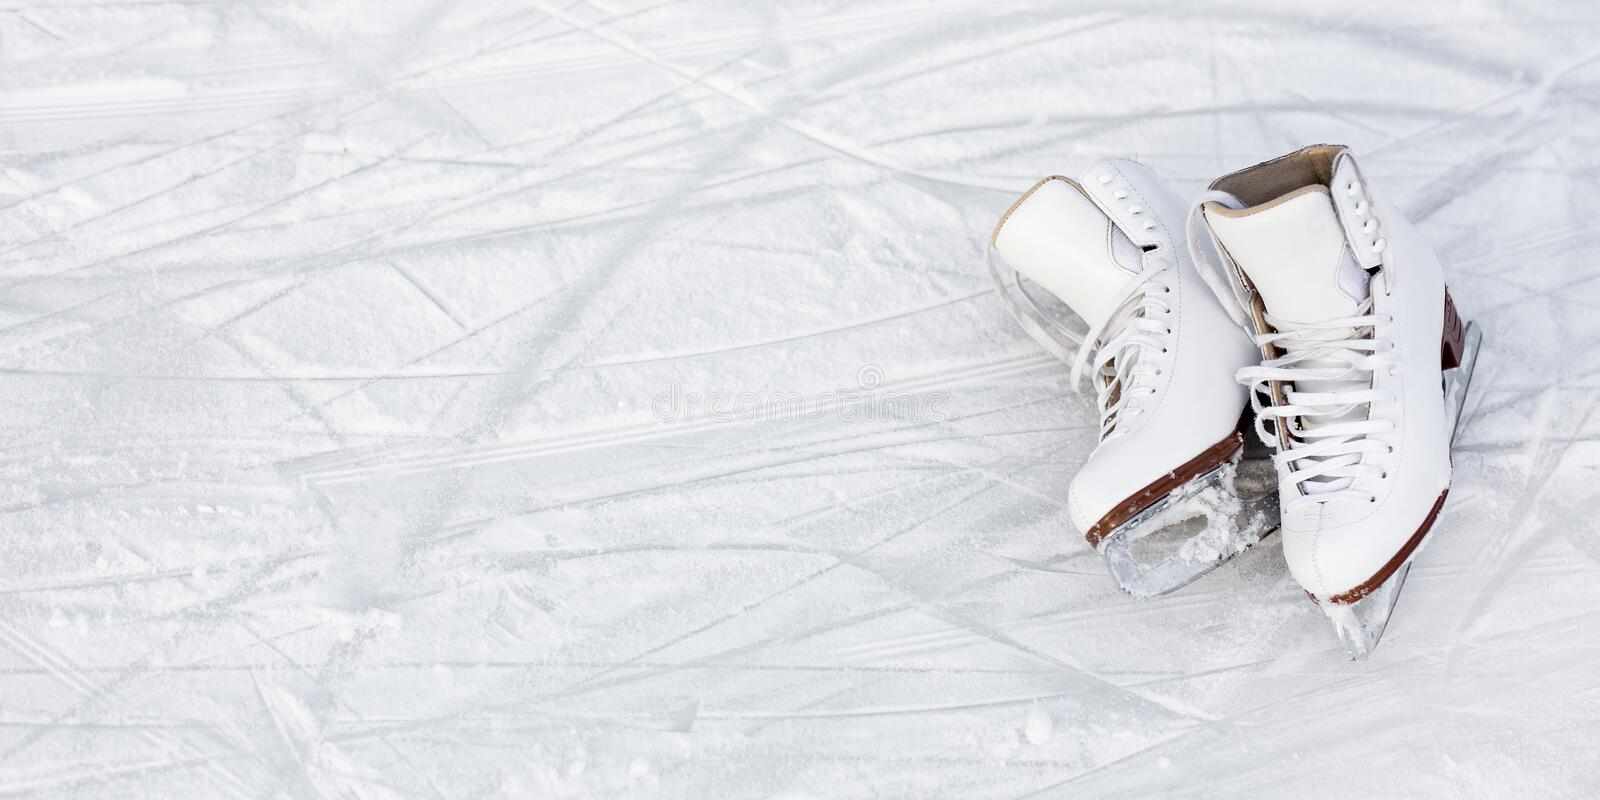 14 402 Figure Ice Skating Photos Free Royalty Free Stock Photos From Dreamstime